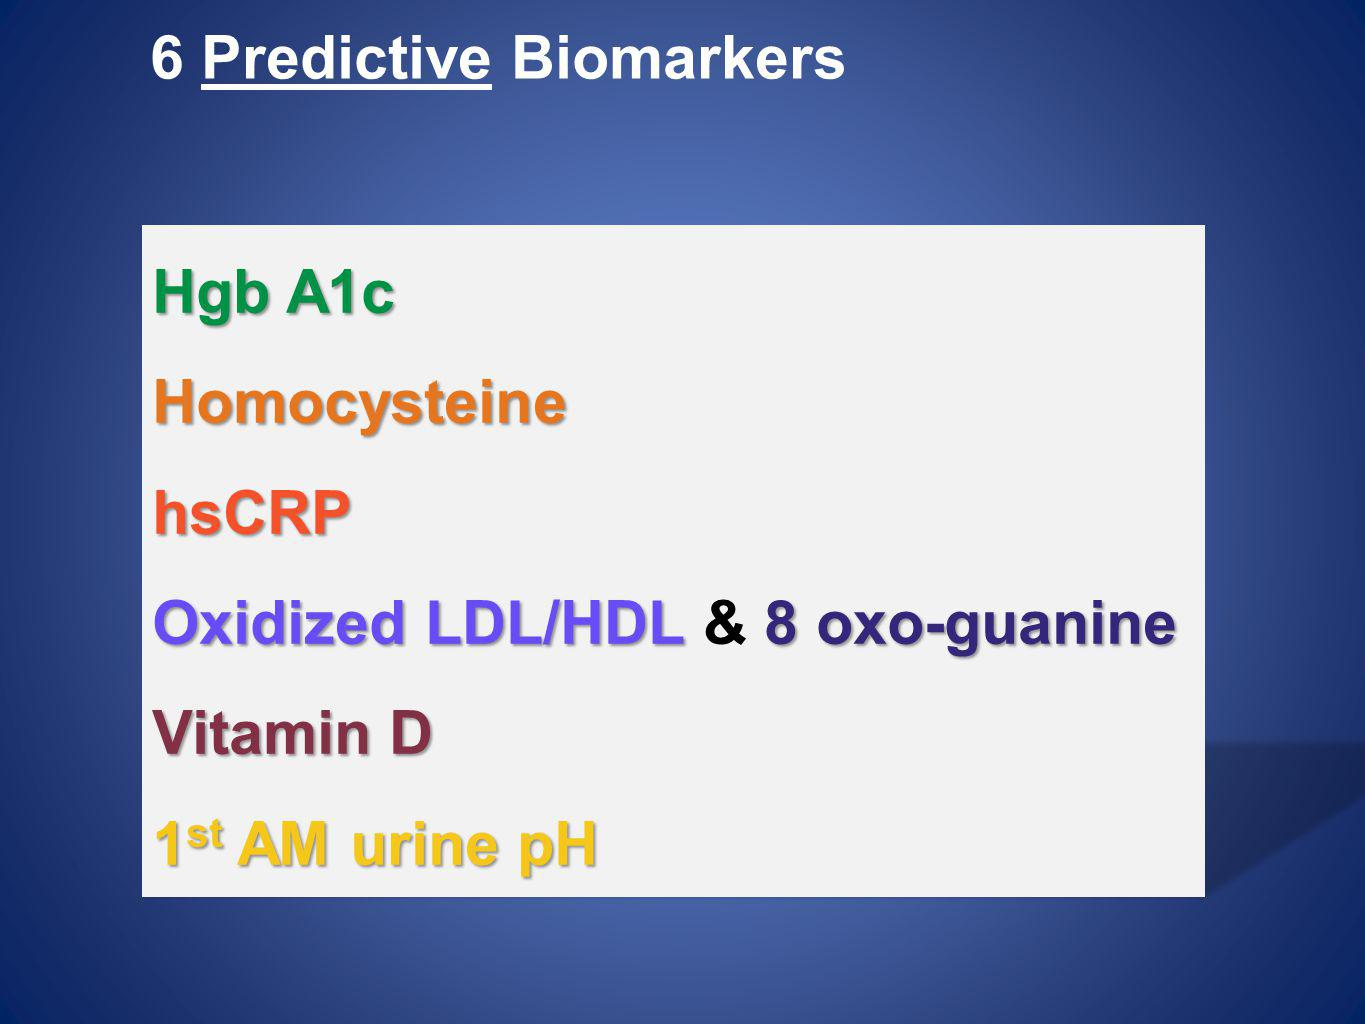 6 Predictive Biomarkers Hgb A1c HomocysteinehsCRP Oxidized LDL/HDL 8 oxo-guanine Oxidized LDL/HDL & 8 oxo-guanine Vitamin D 1 st AM urine pH